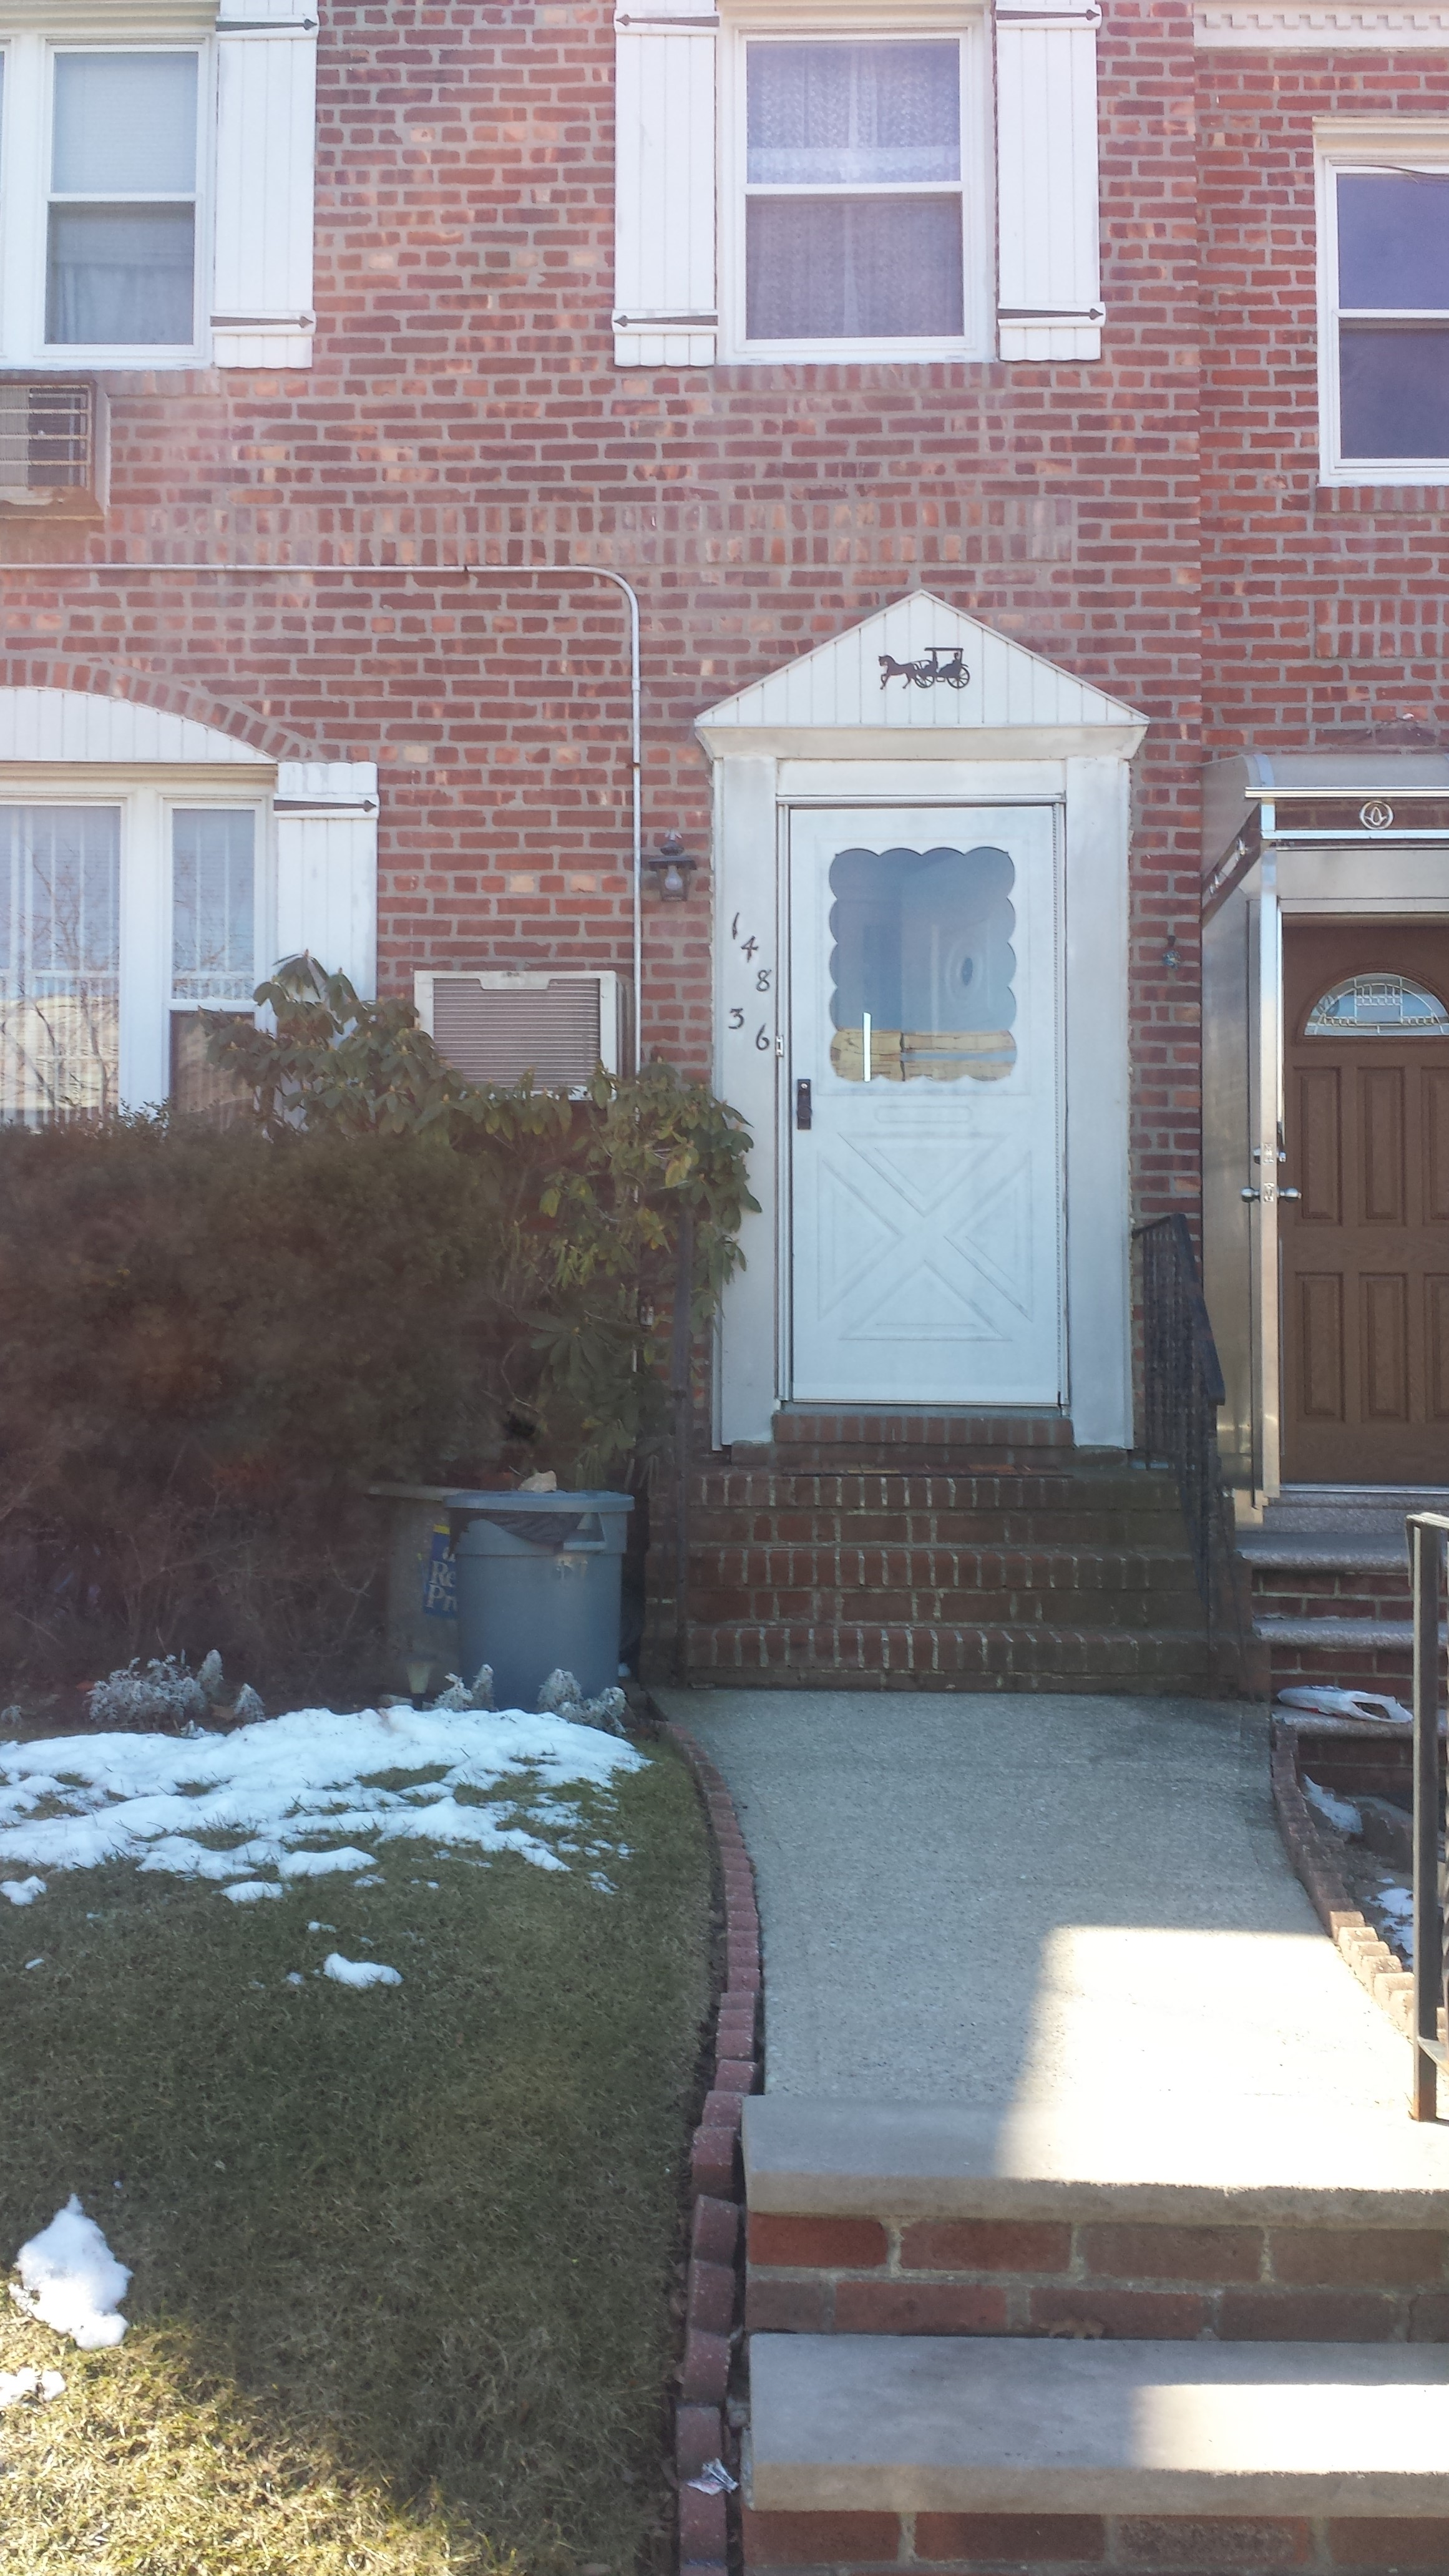 Attached Colonial Living Room, Formal Dining Room, Eat-In-Kitchen, 3 Bedrooms, 1.5 Baths, Full Basement, Great Potential